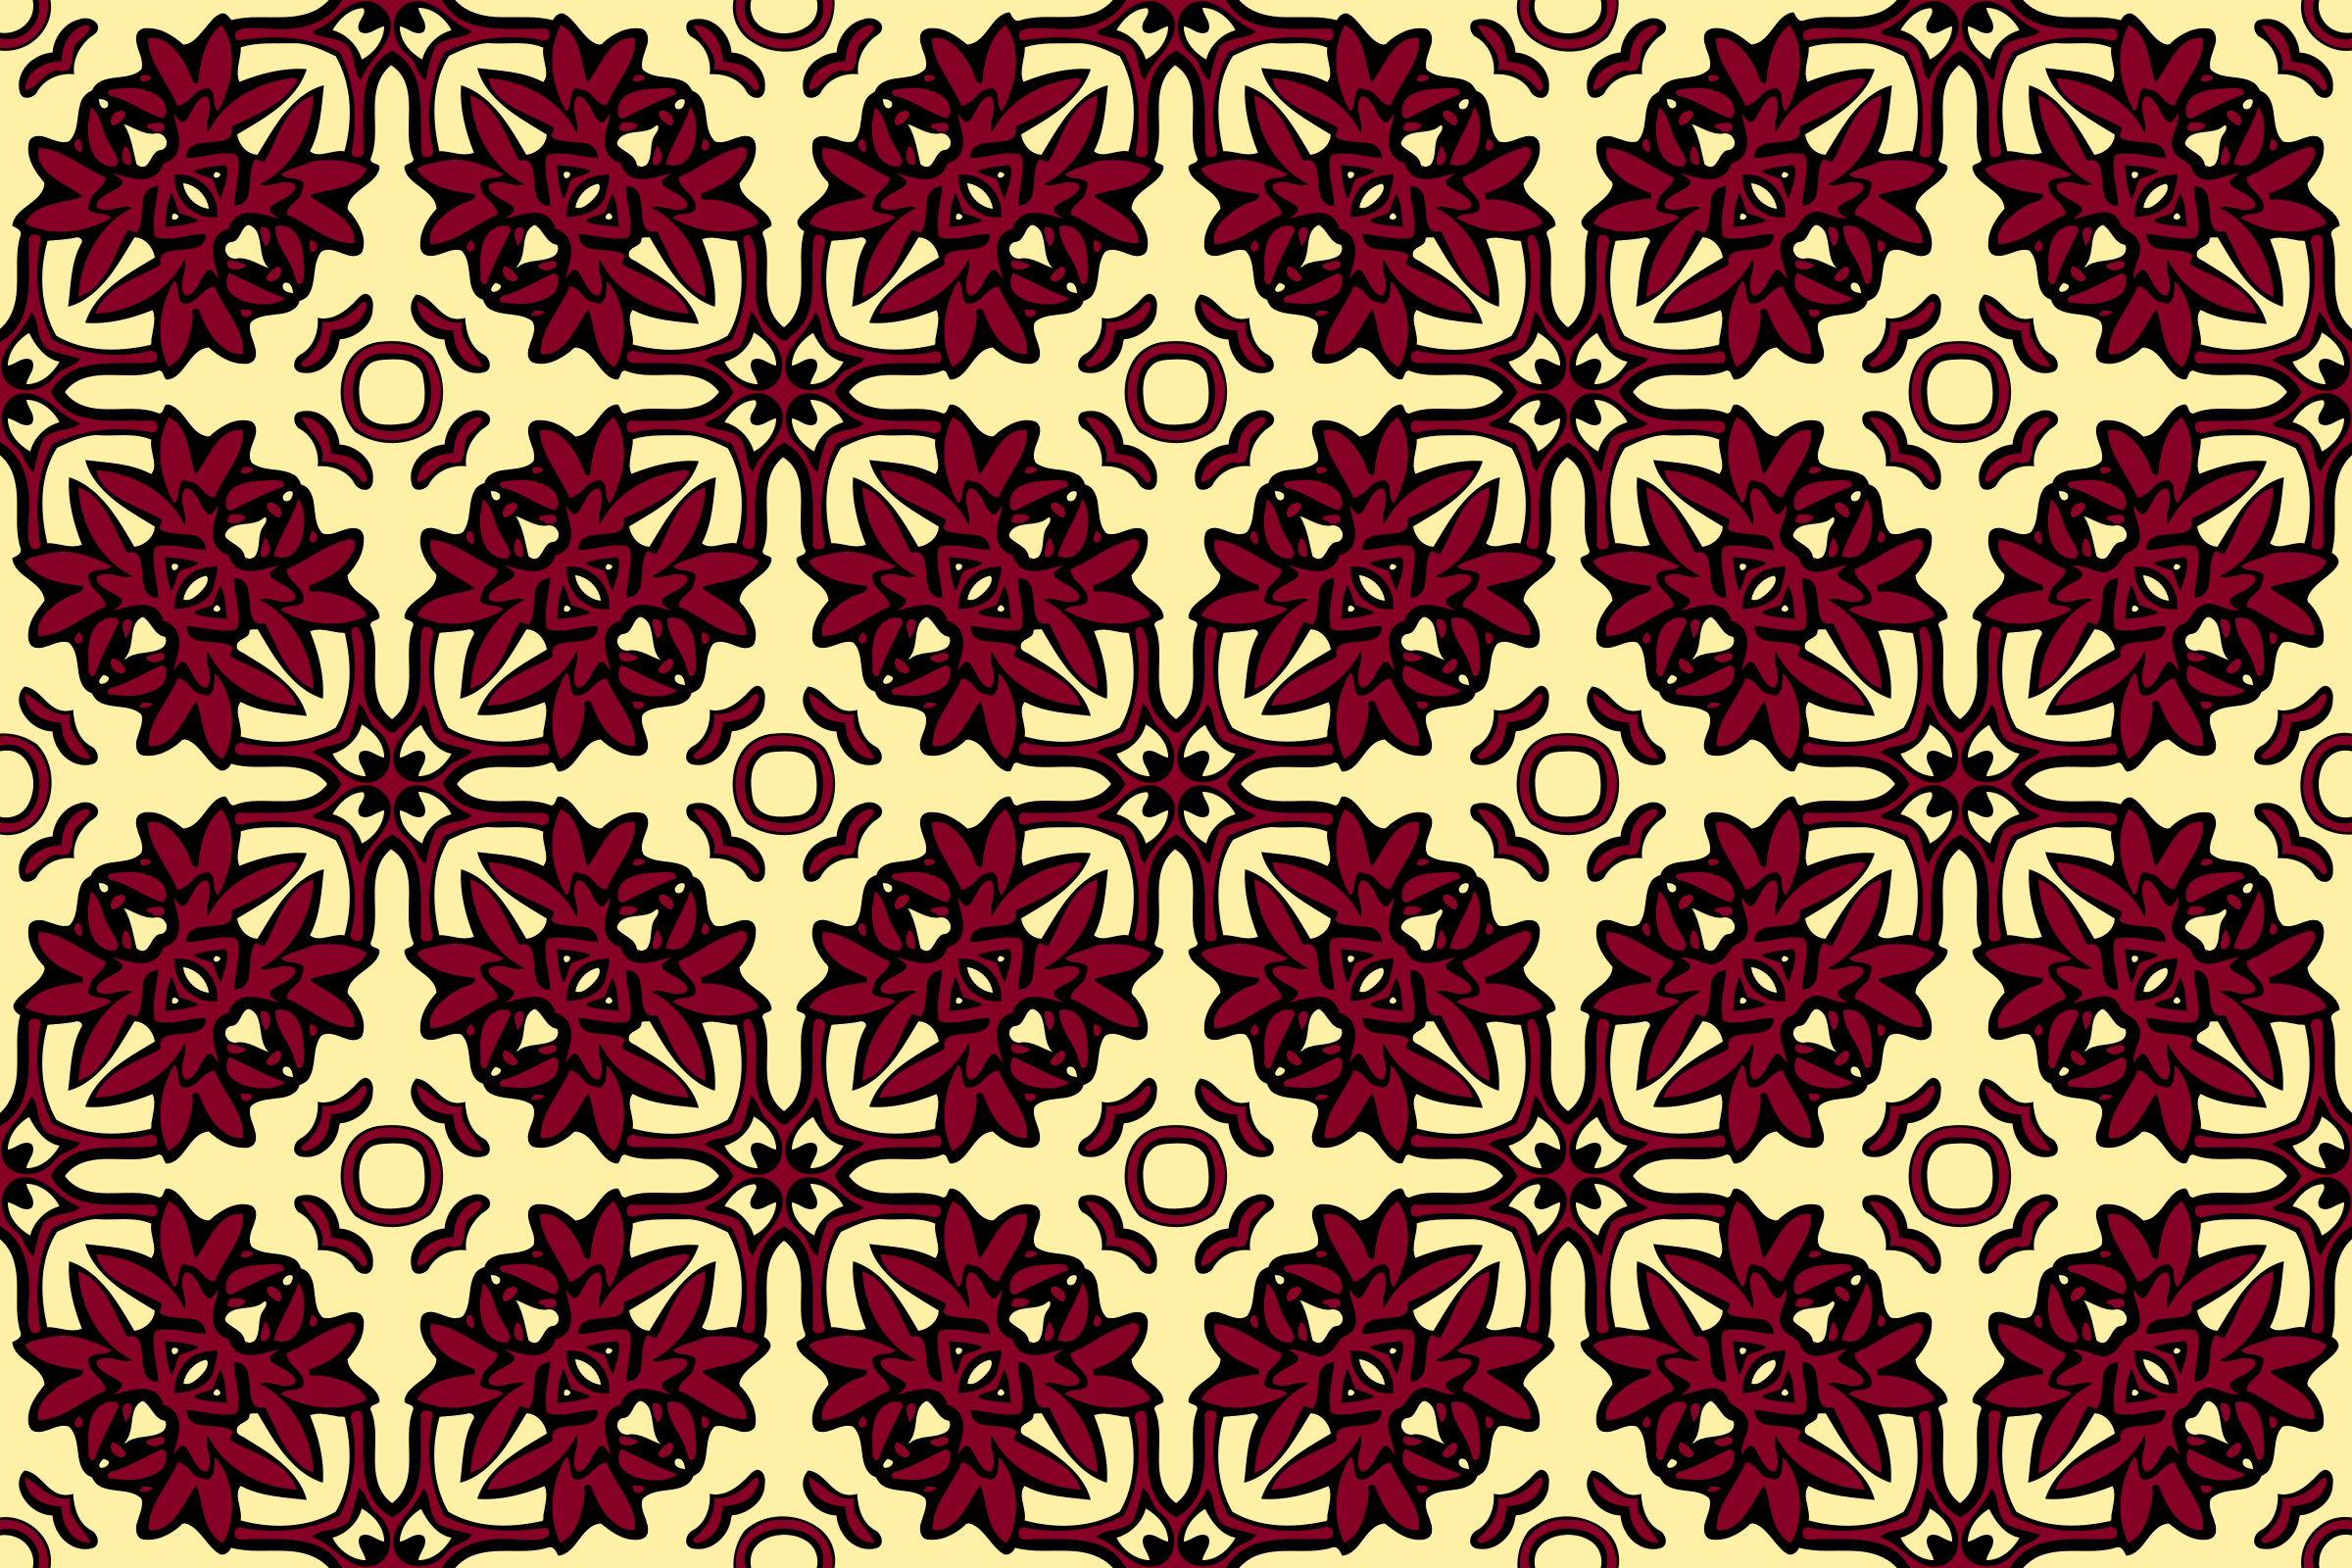 Background pattern 83 (colour) by Firkin